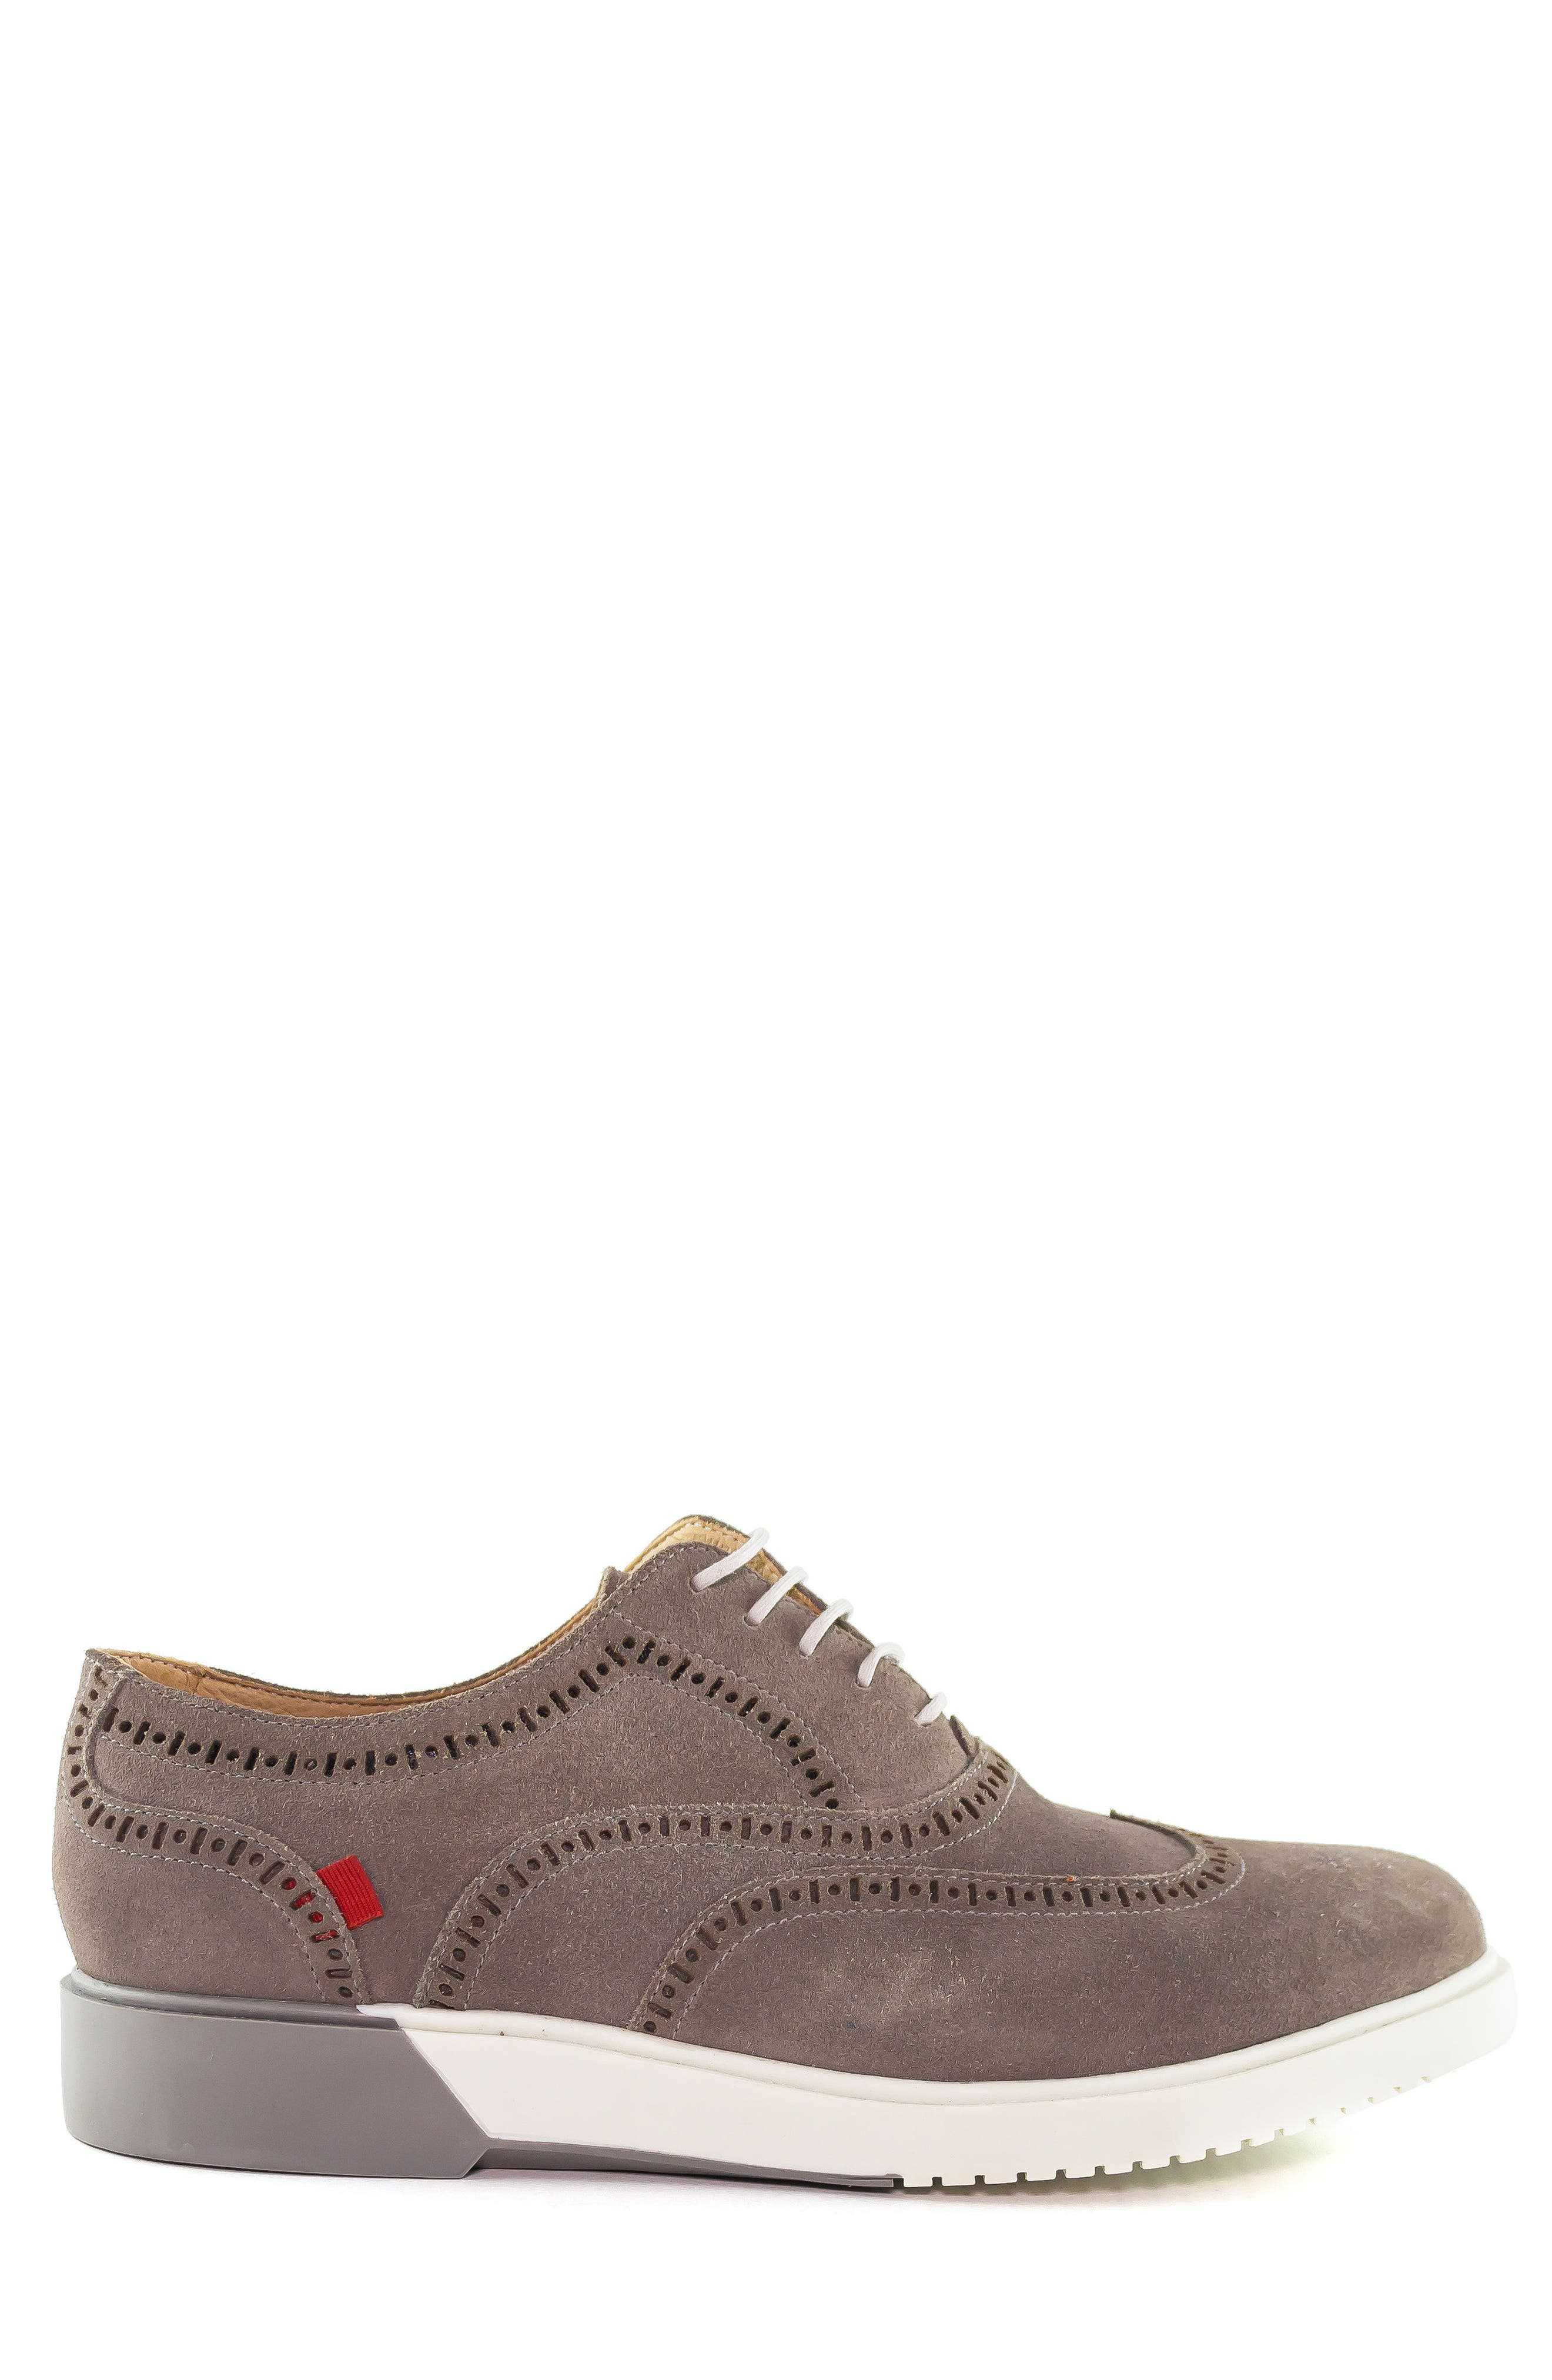 5th Ave Wingtip Sneaker,                             Alternate thumbnail 3, color,                             GREY SUEDE